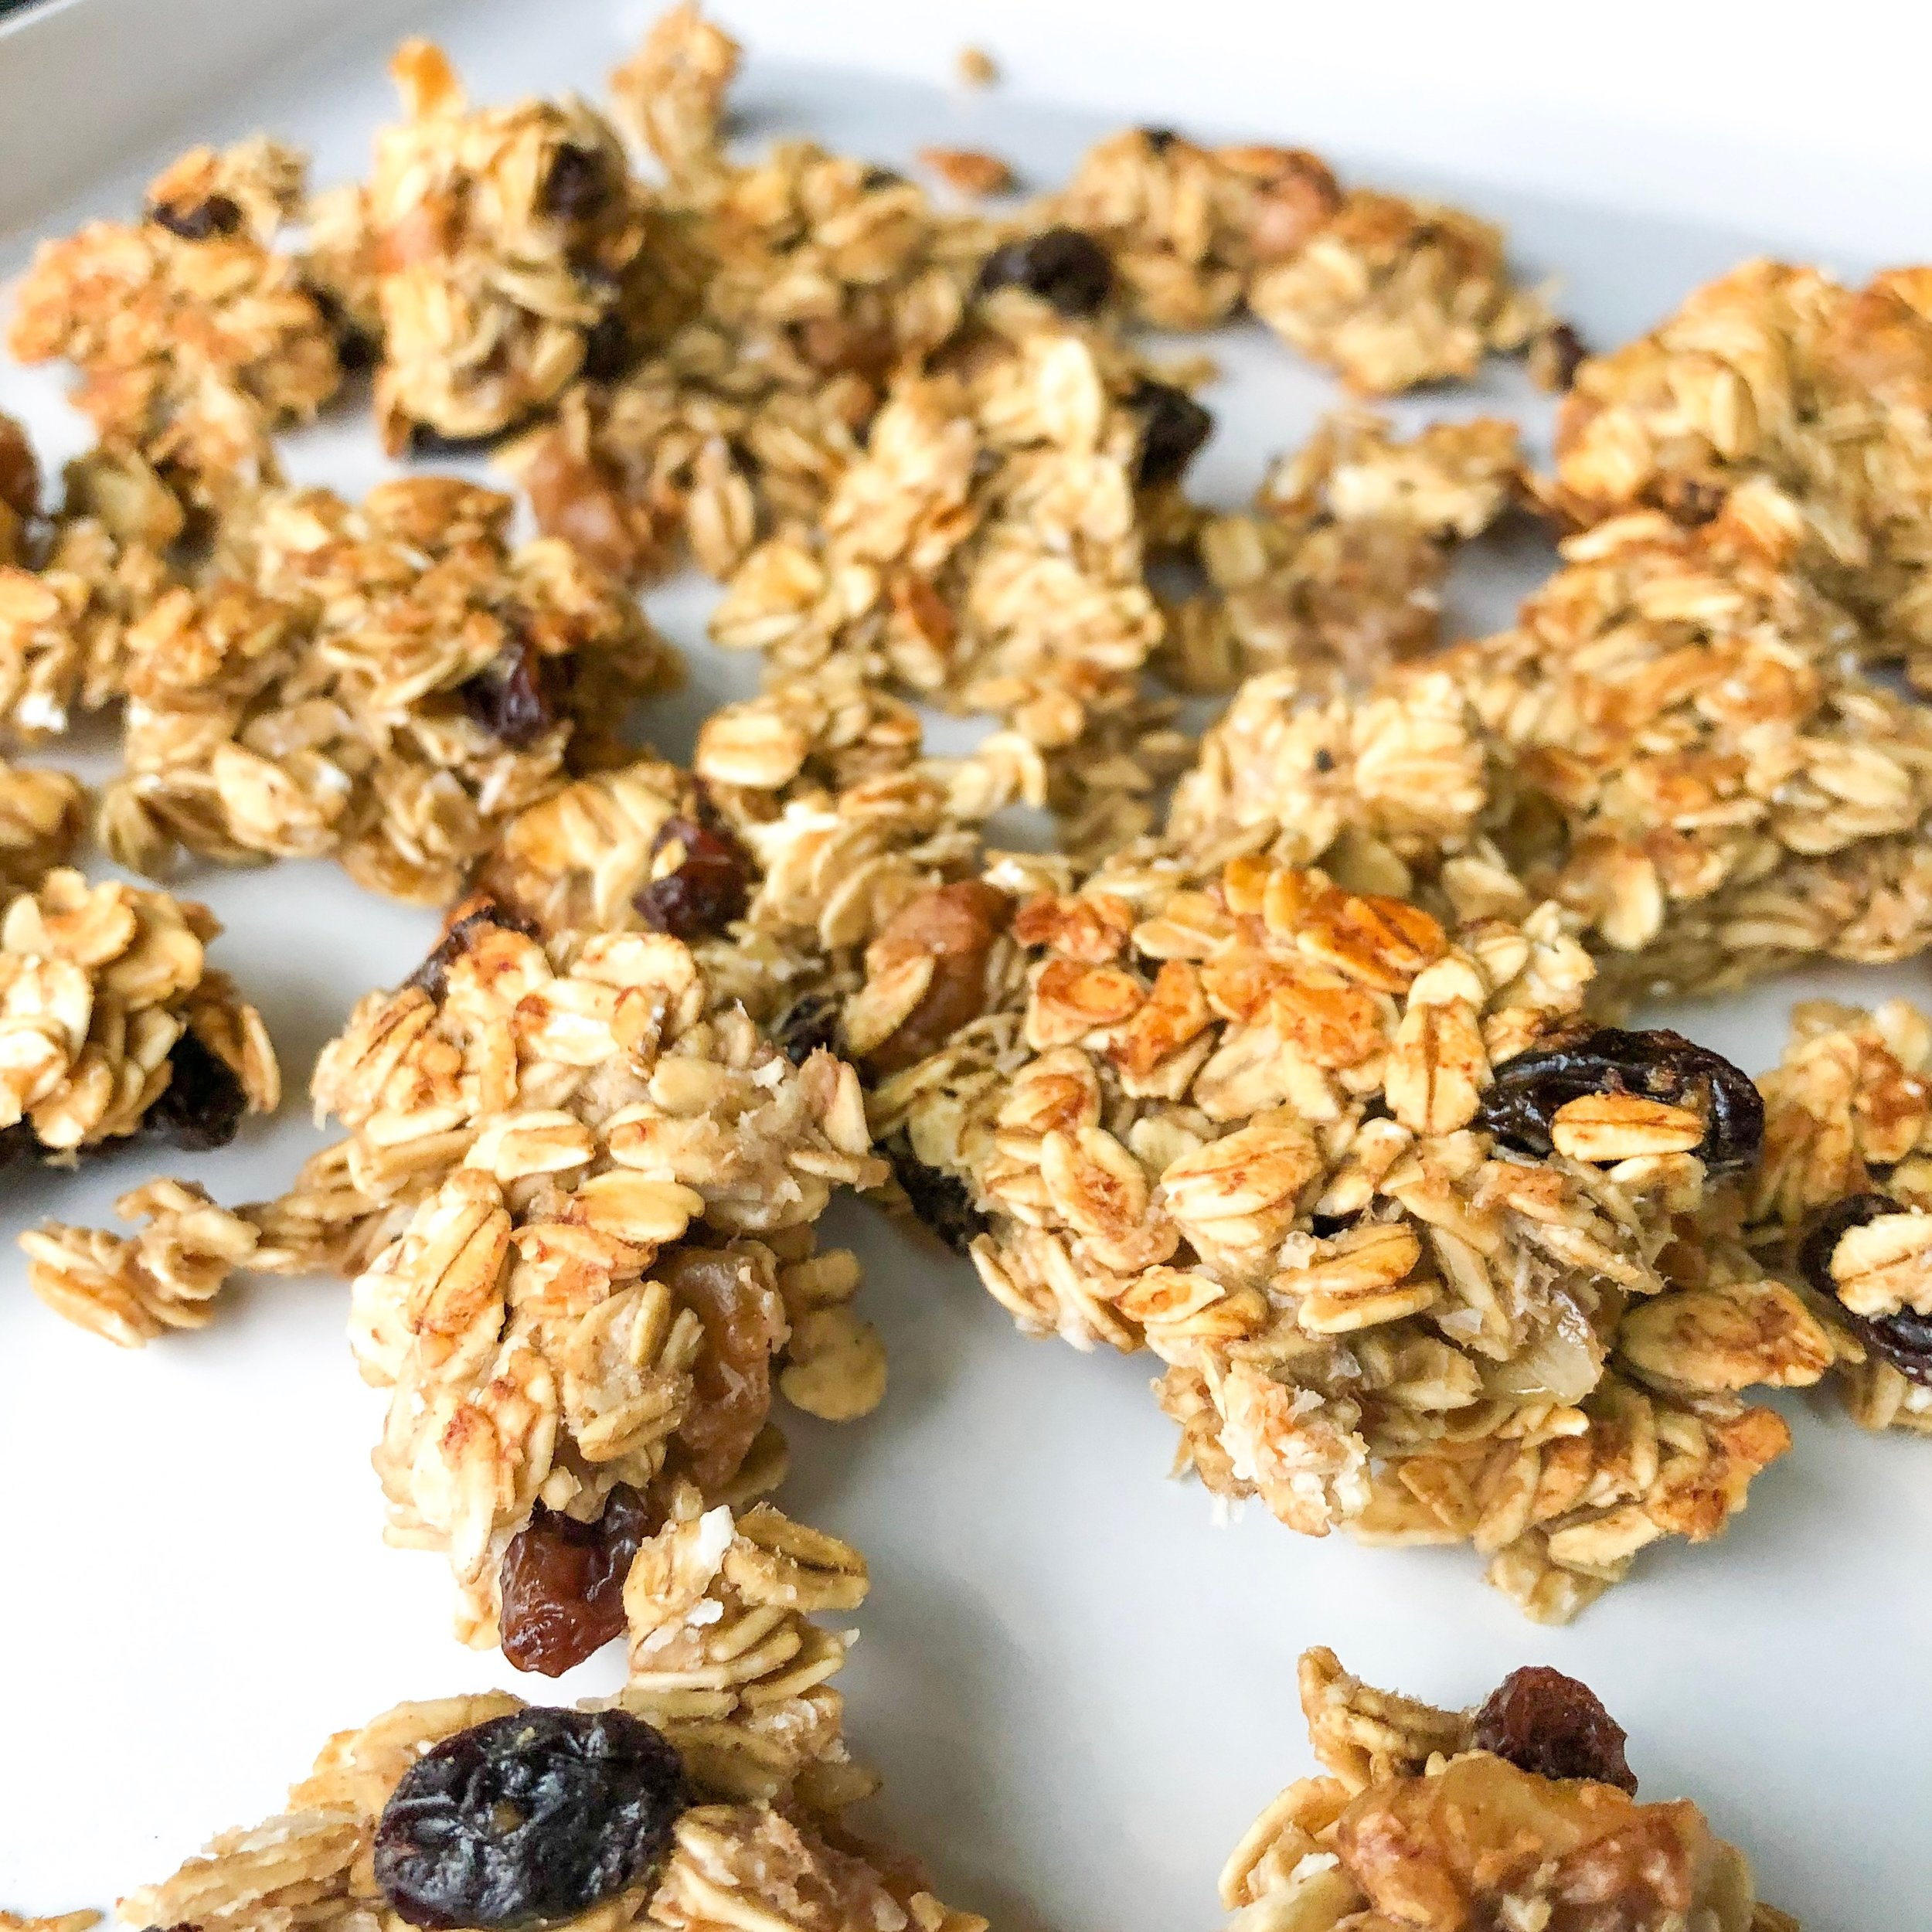 Banana Bread Granola - DAIRY-FREE, NO ADDED SUGAR, GLUTEN-FREE (OPTIONAL), VEGAN (OPTIONAL)